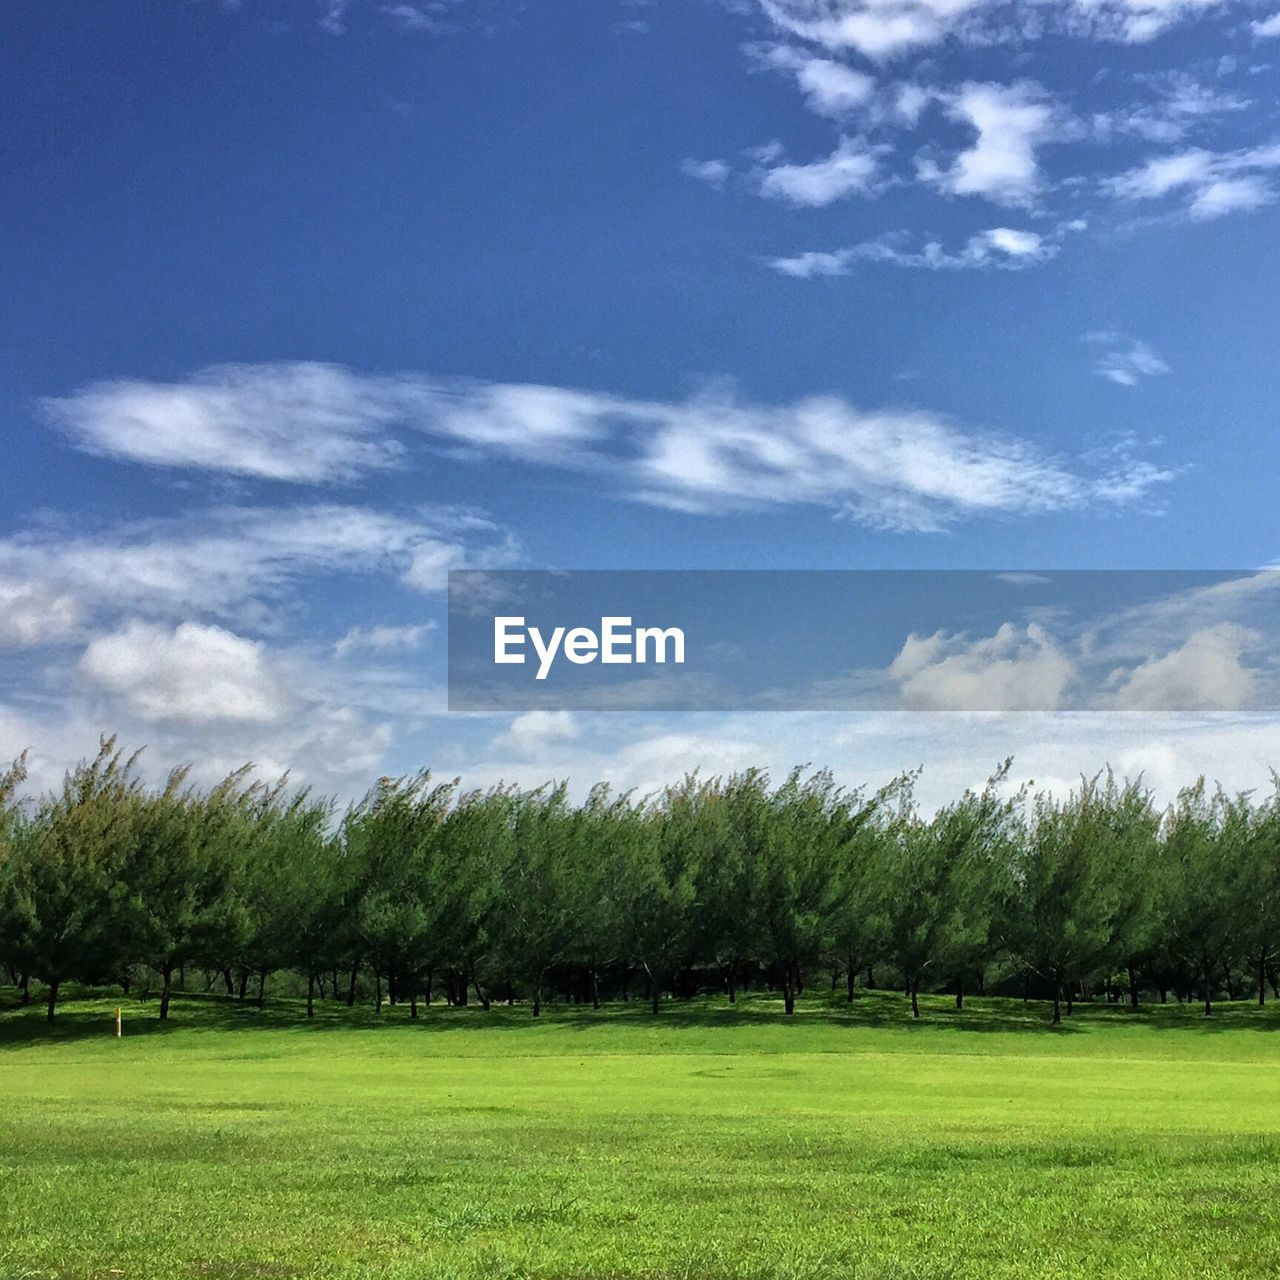 Trees on grassy field against sky